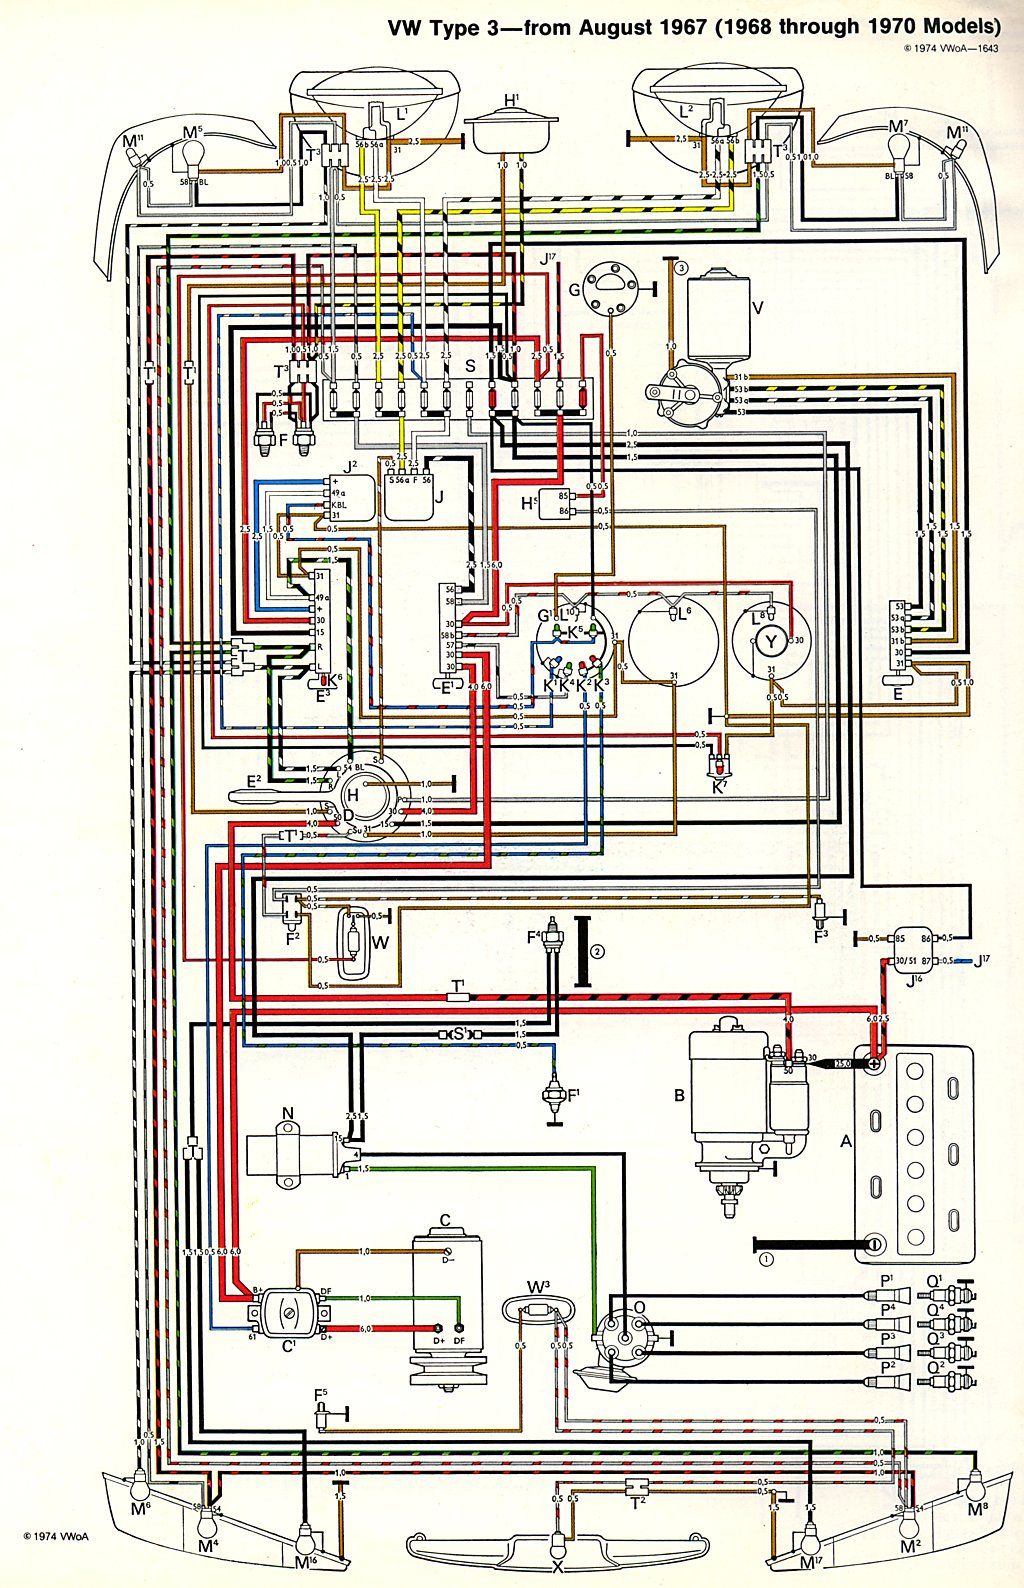 Vw Car Wire Diagram Wiring Schematics Automotive Electrical Harnesses Thesamba Com Type 3 Diagrams Auto